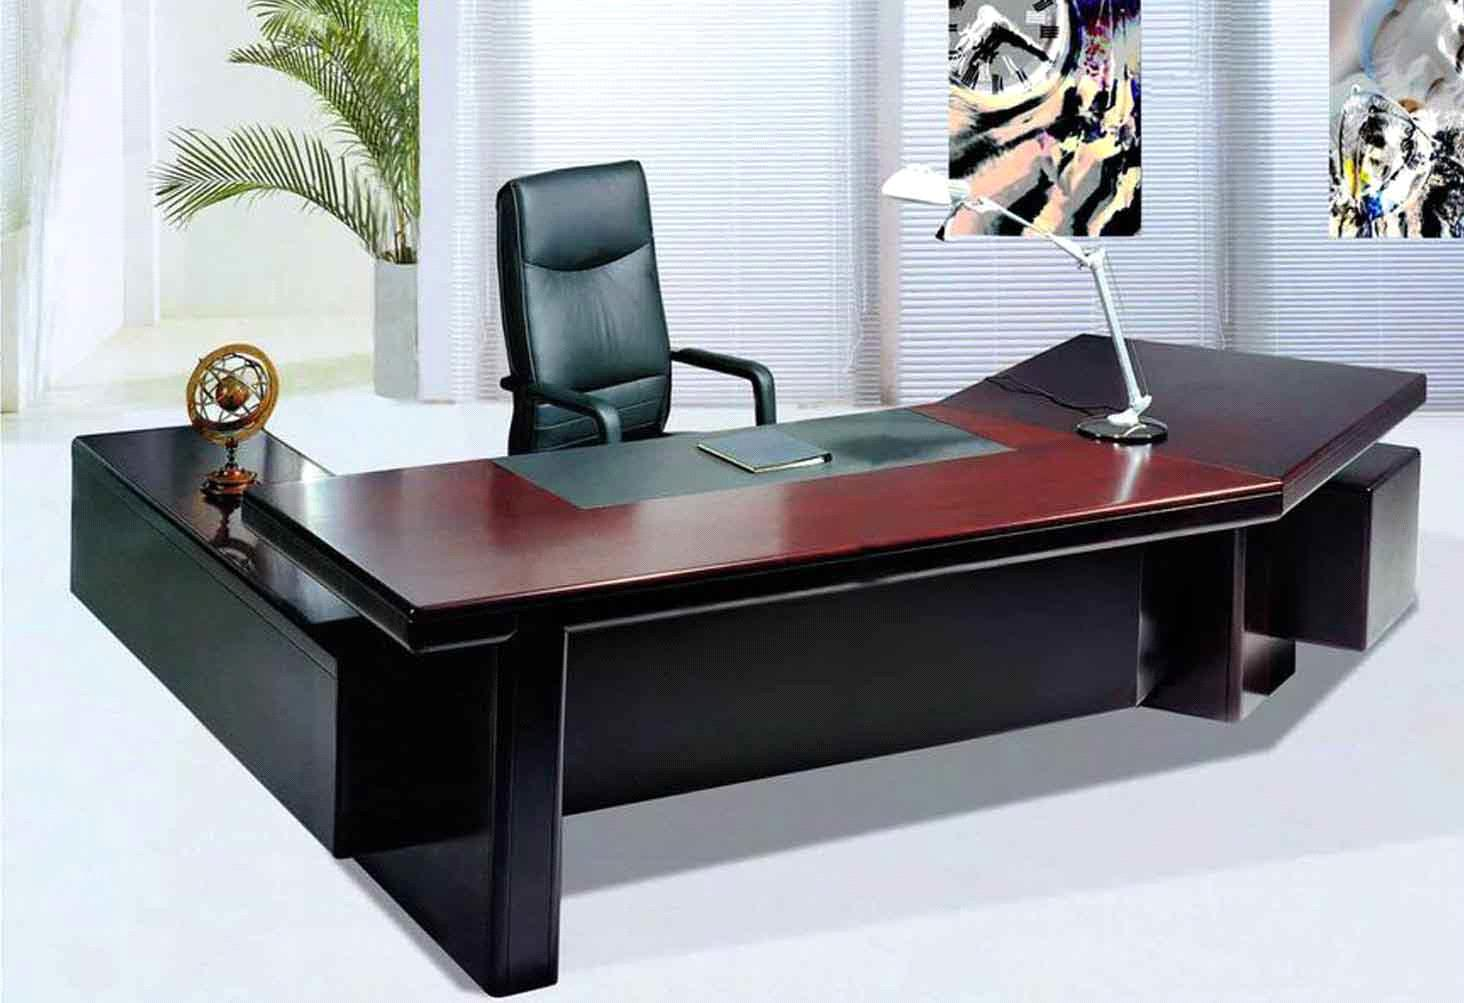 executive office table design. Executive Office Table Design. Cool Tables. Desks Tables D Design